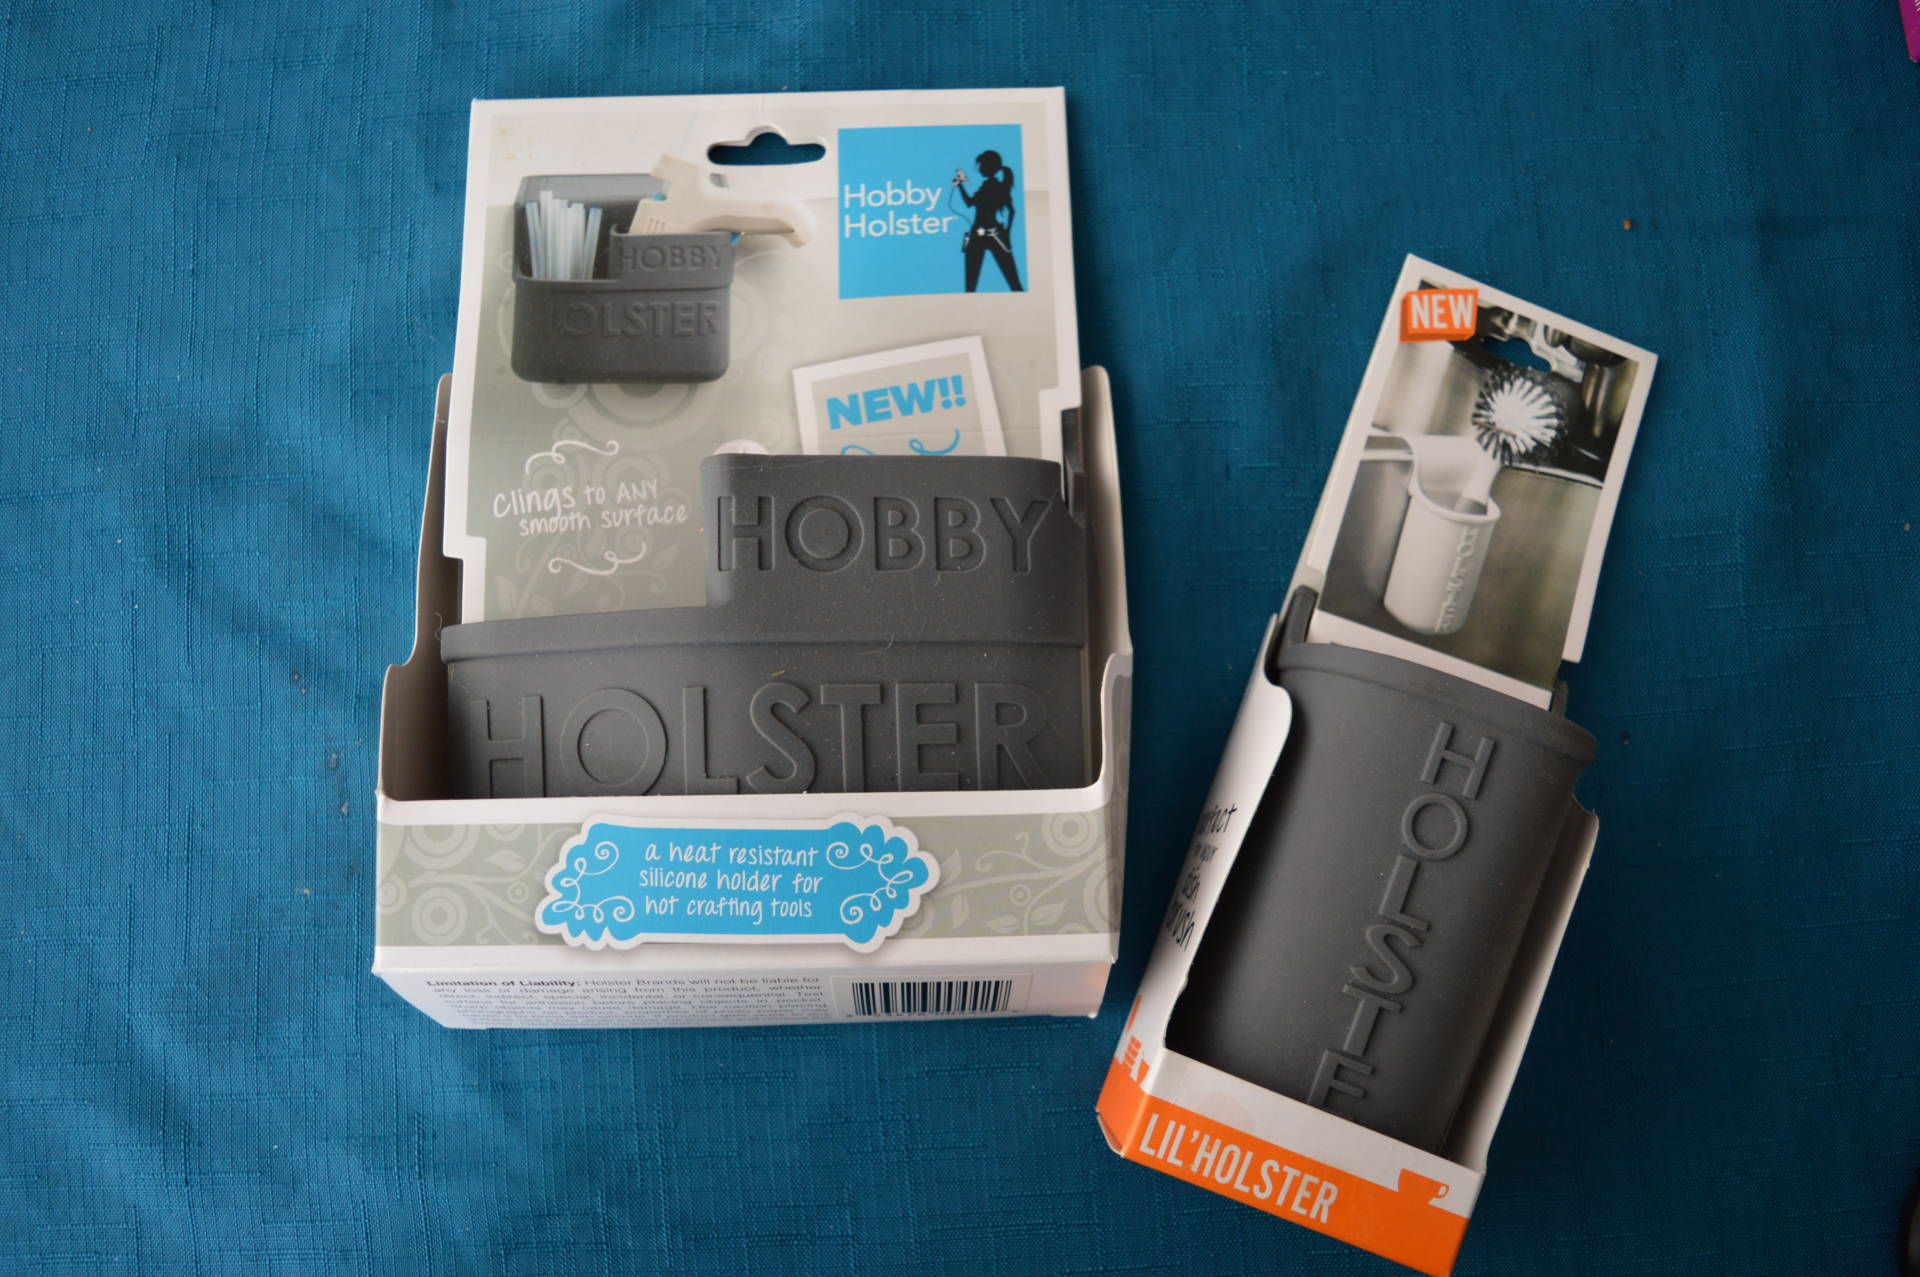 Holster brand products